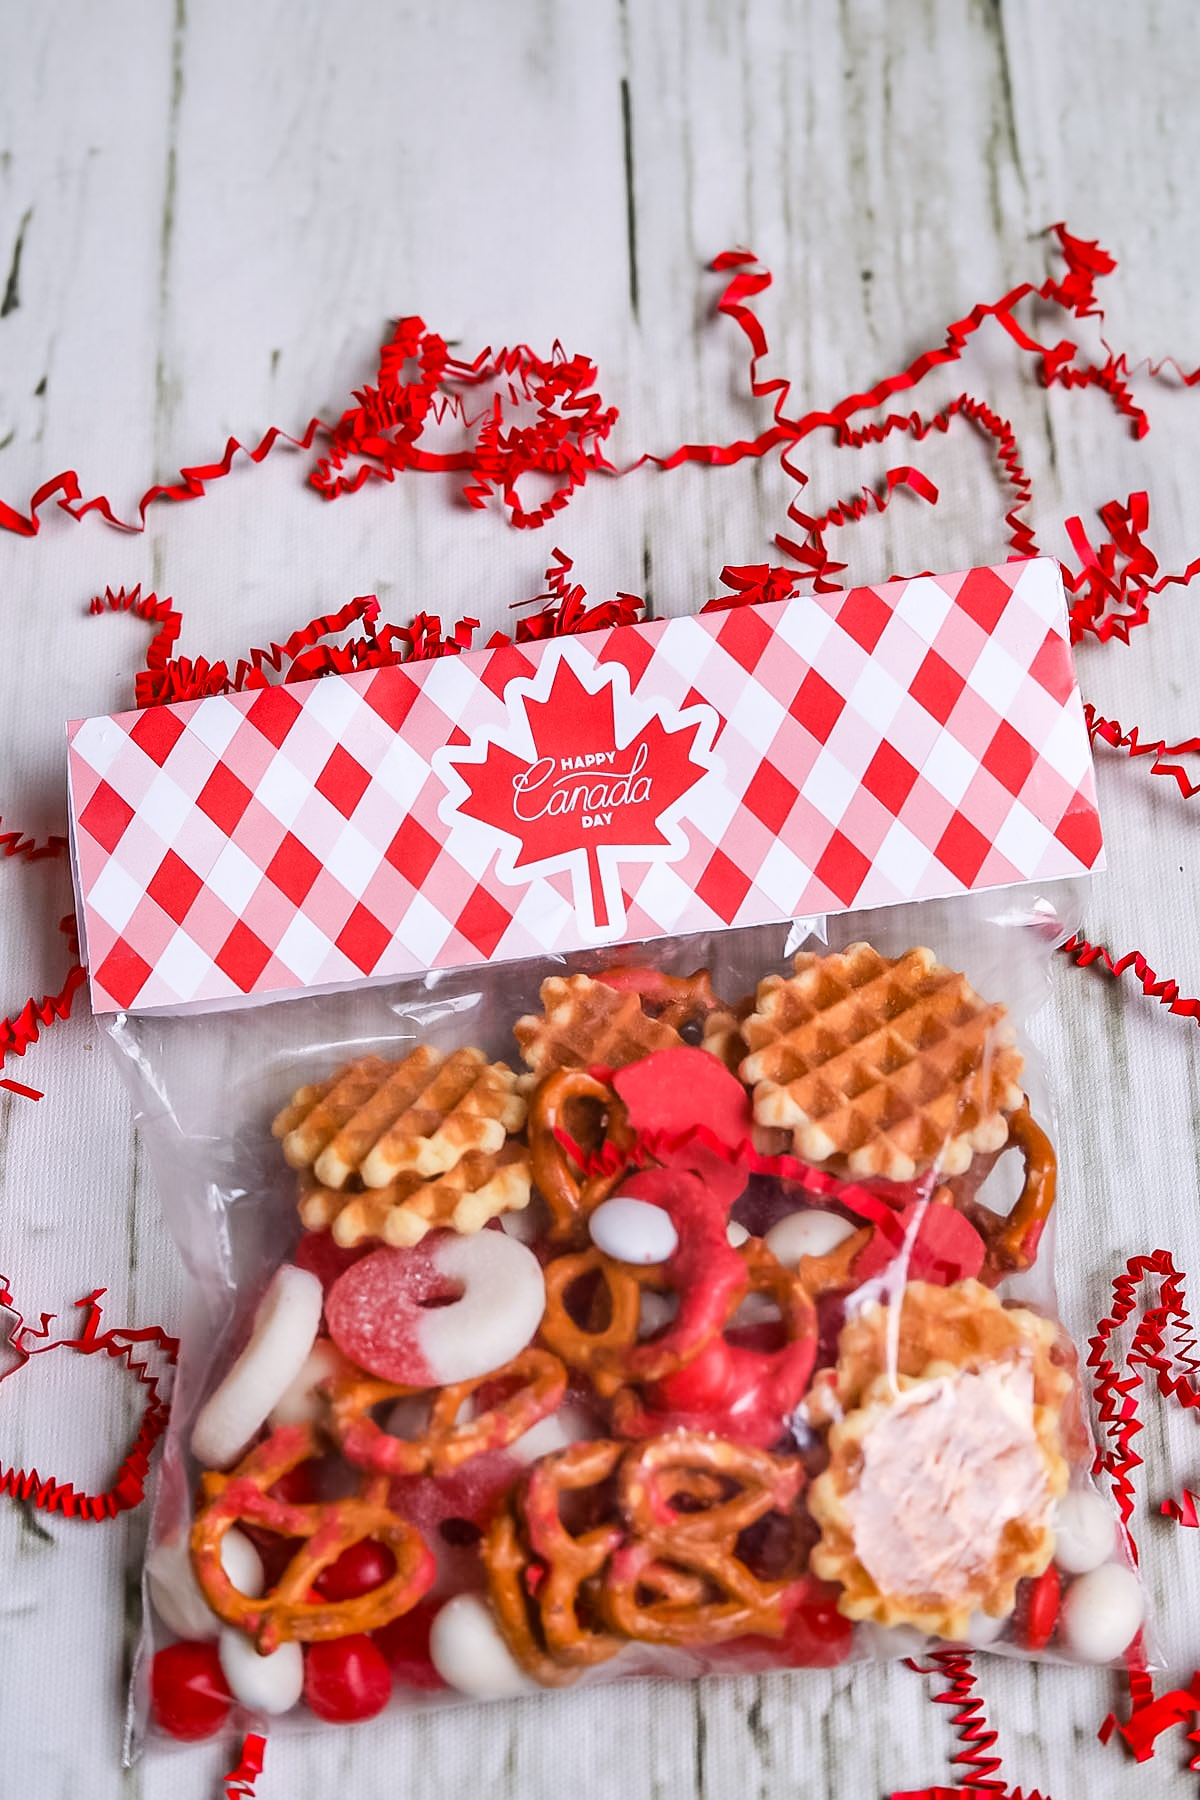 free printable canada day treat bag topper via @brookeberry